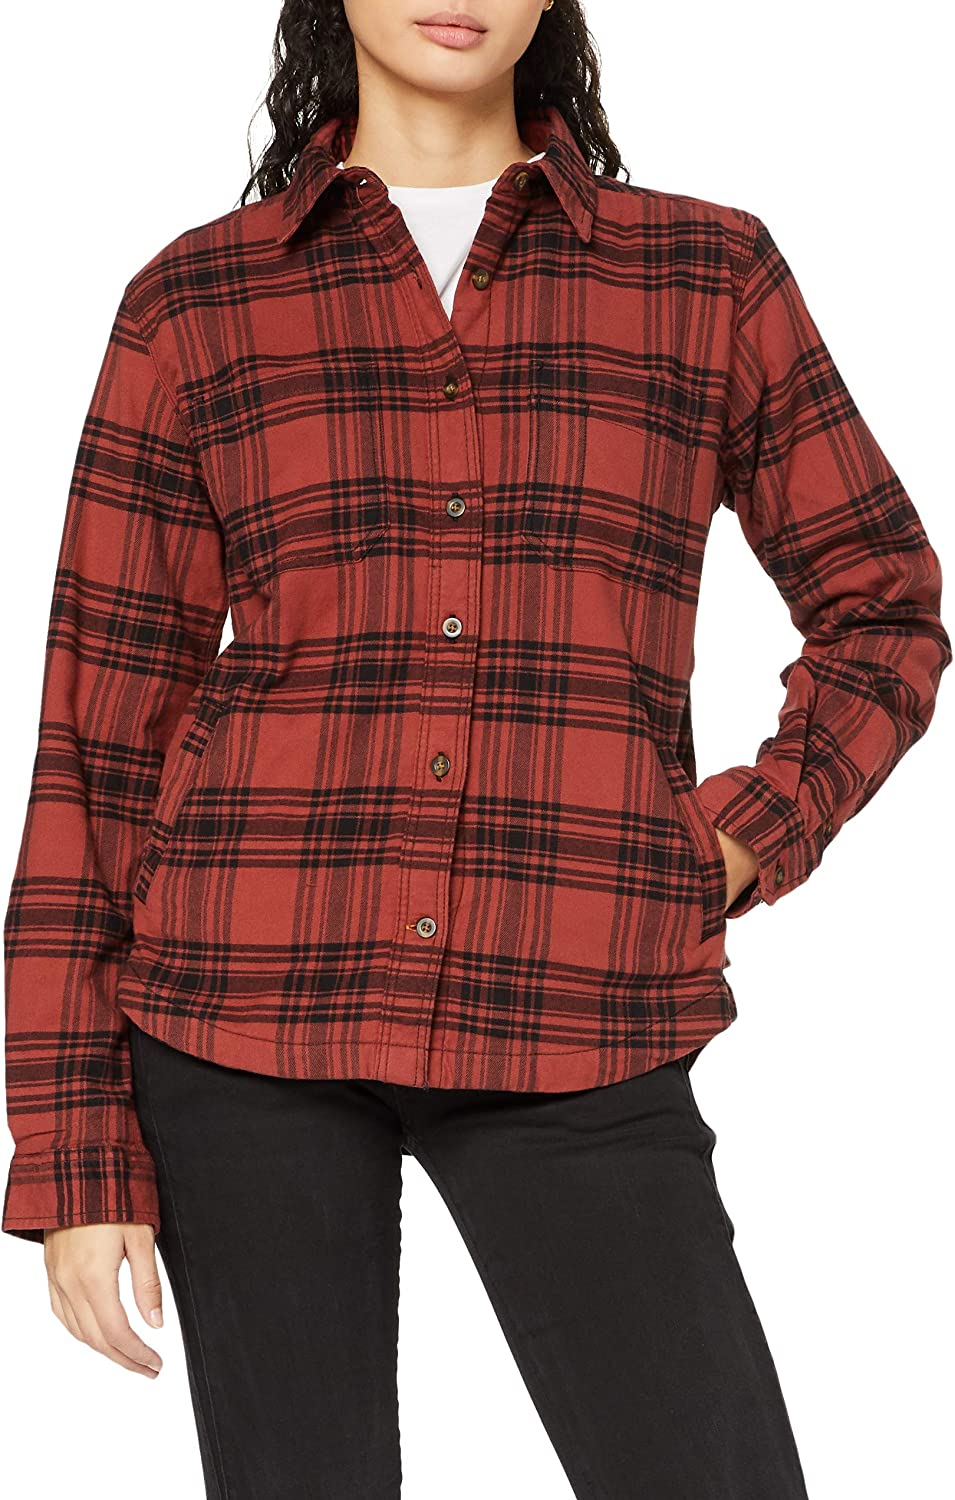 Carhartt Women's Inexpensive Rugged Flex Relaxed Cash special price Fleece-Lined Fit Pl Flannel